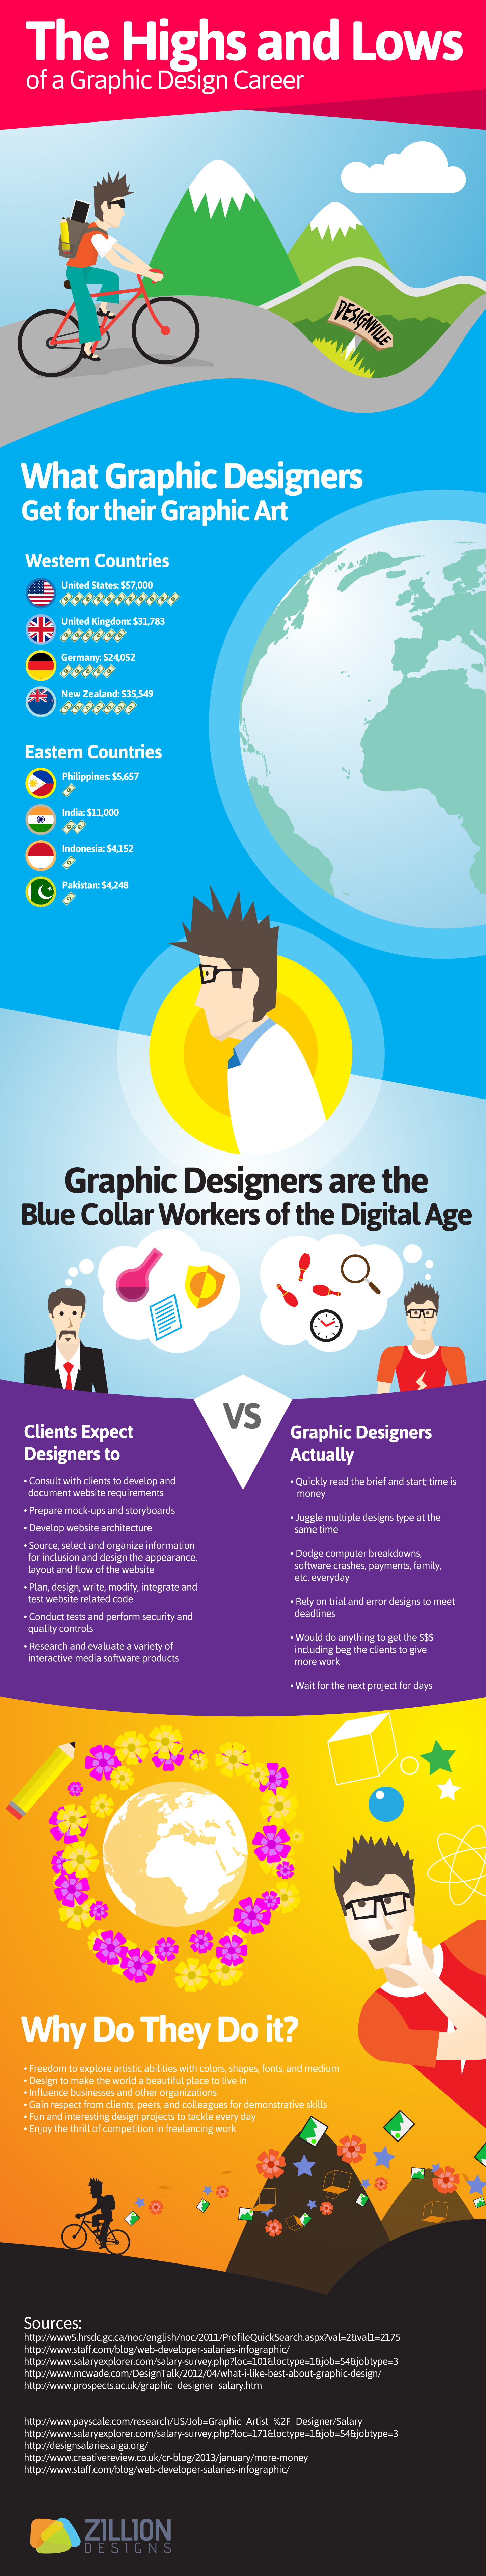 Infographic - The Highs and Lows of a Graphic Designer